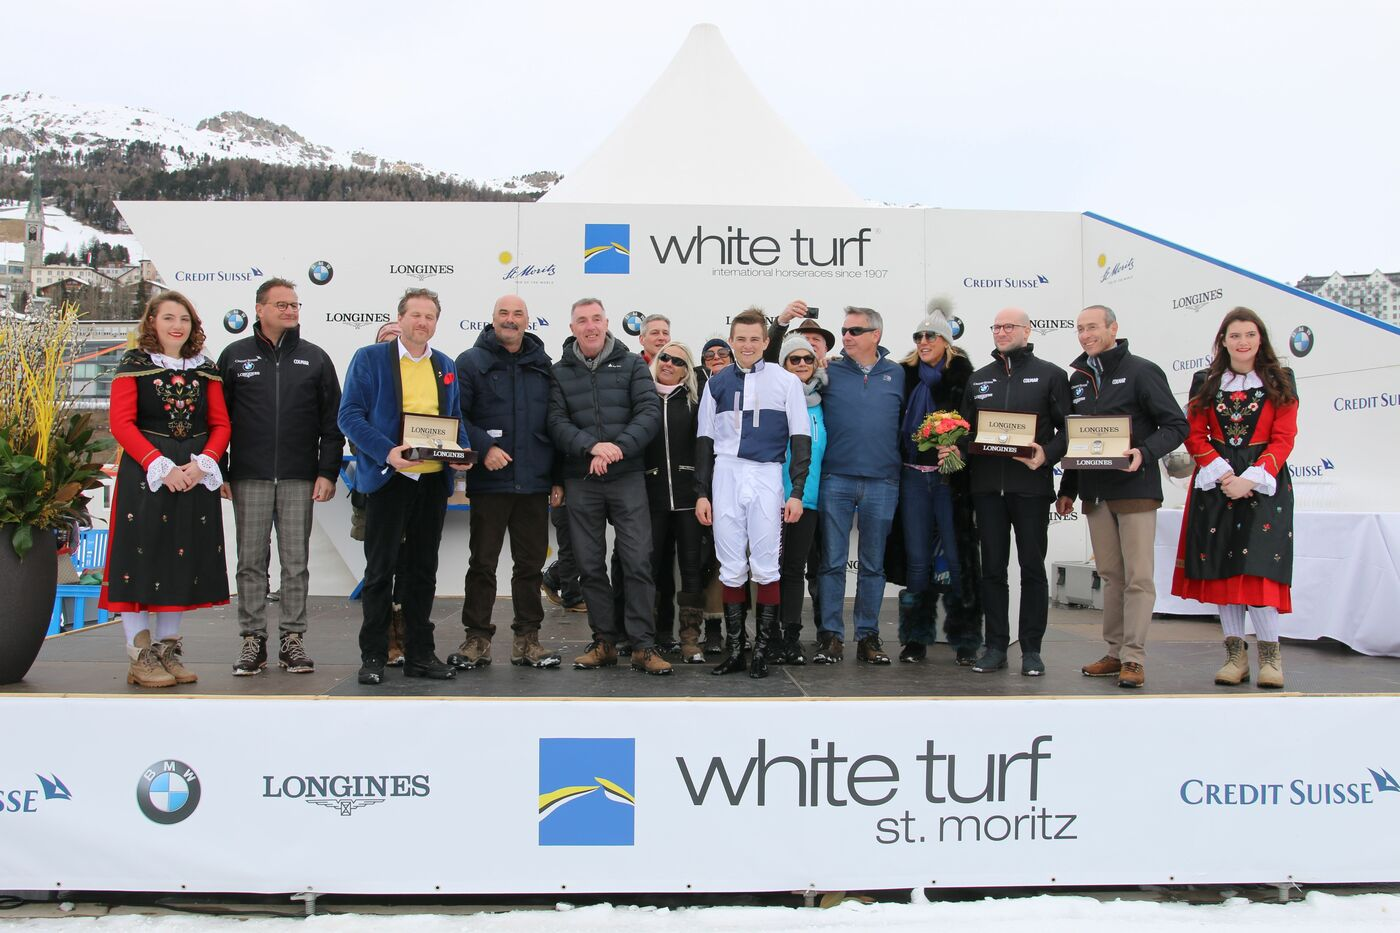 Longines Flat Racing Event: Three Sundays of exciting competitions and exceptional performances concluded by the Longines 81st Grosser Preis von St. Moritz 2